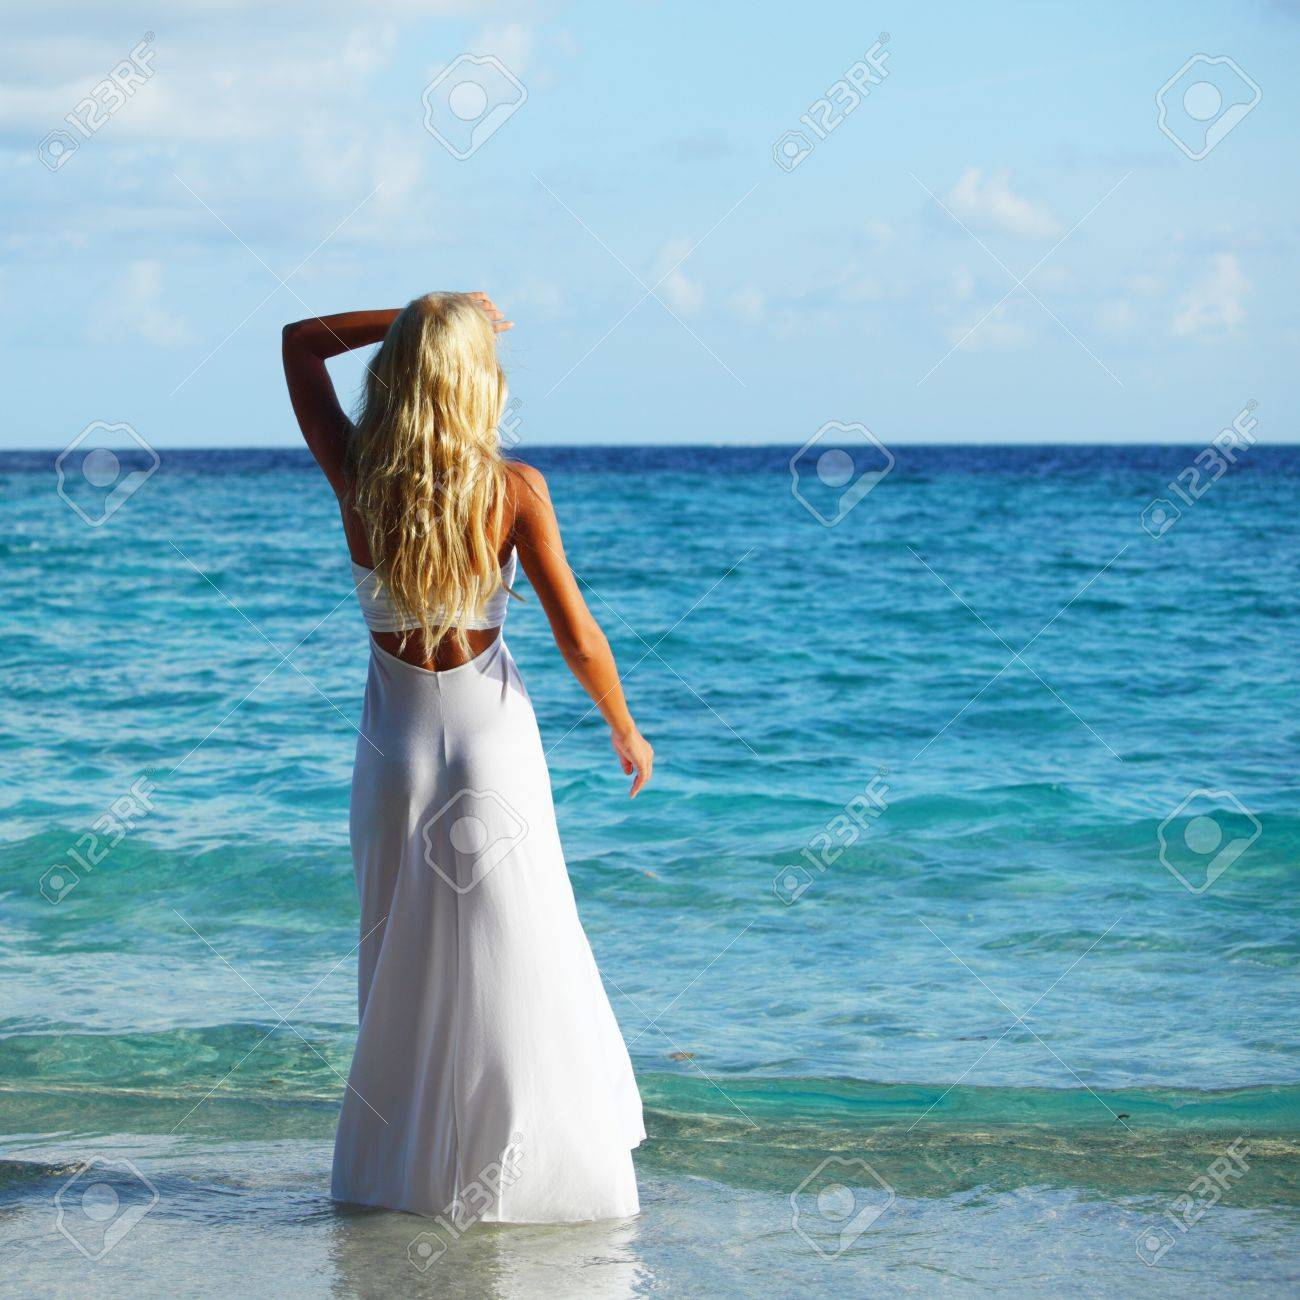 woman in a white dress on the ocean coast Stock Photo - 10896010